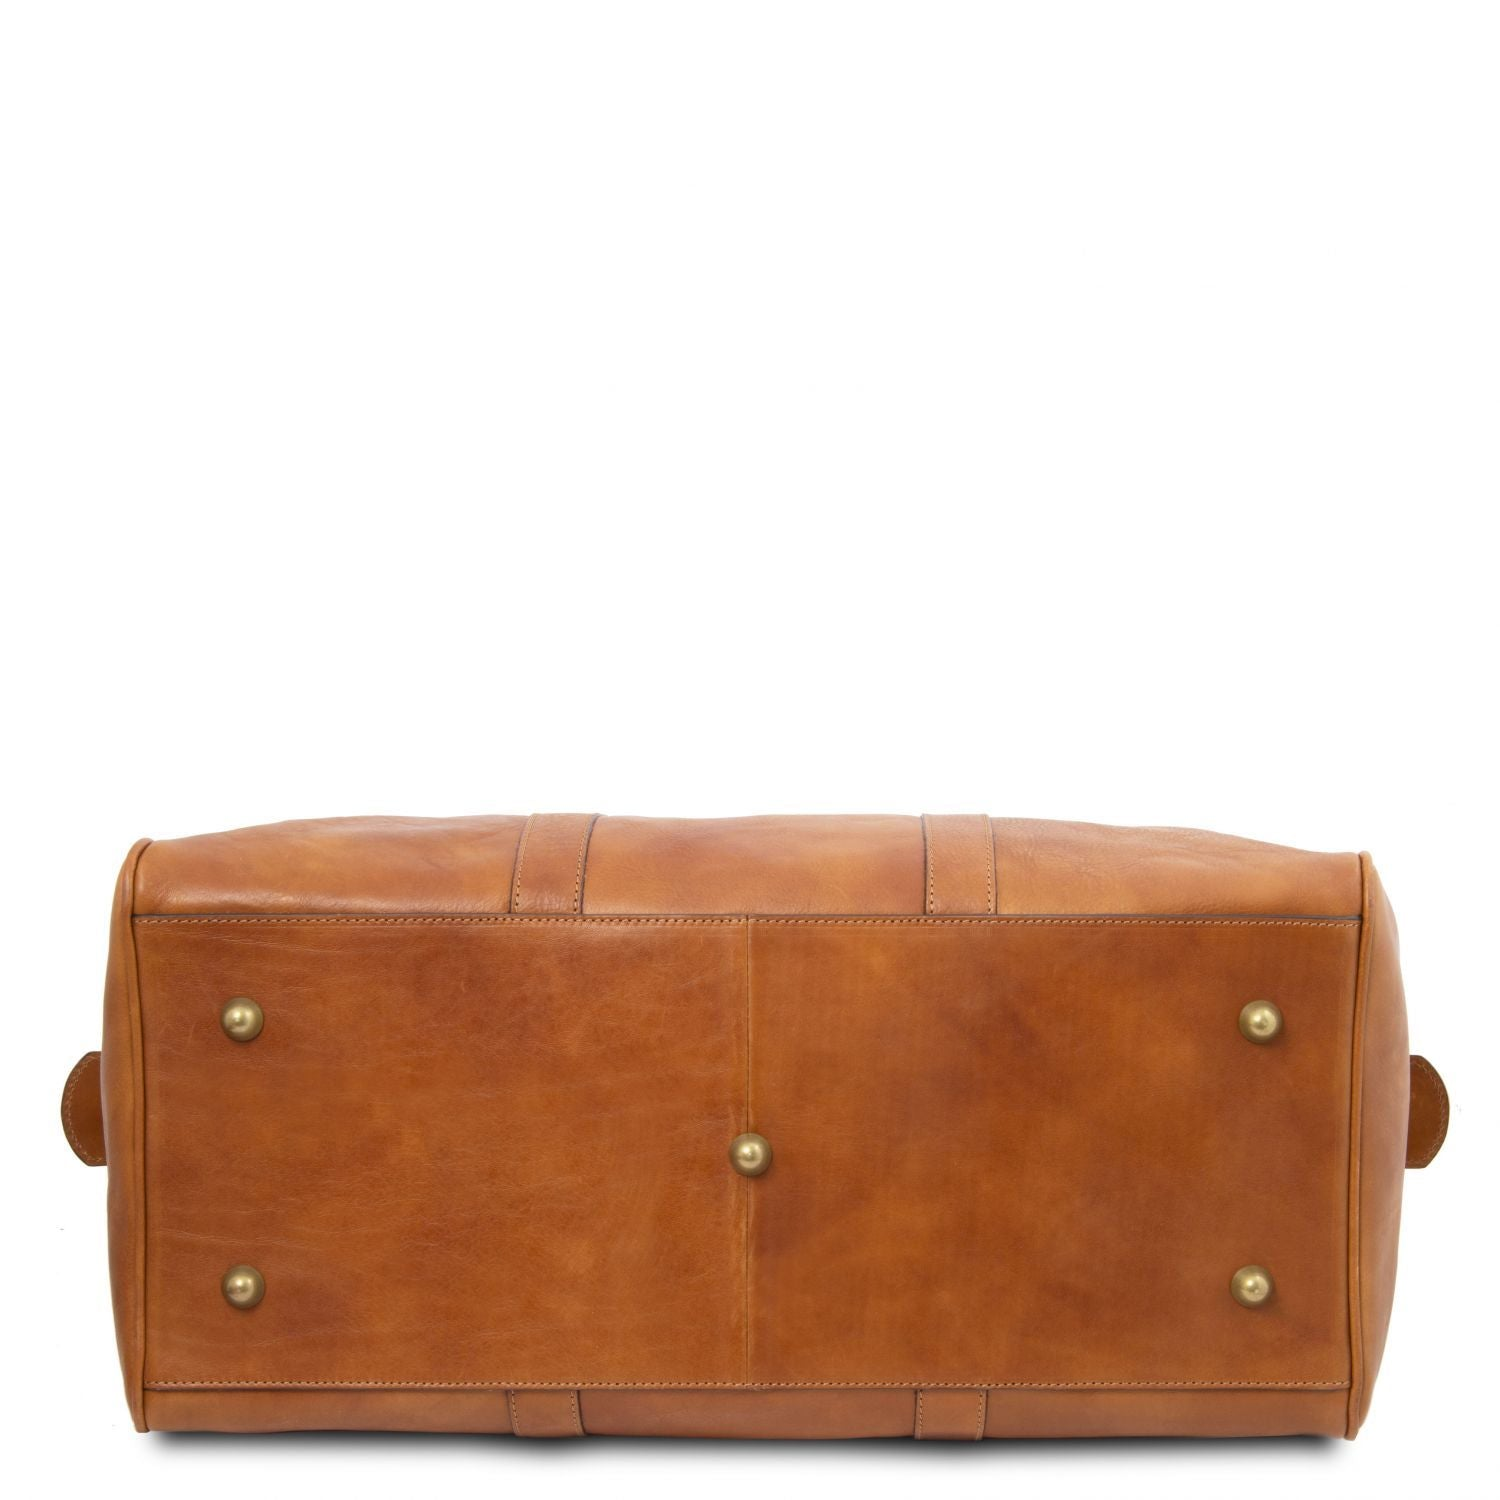 Oslo - Travel leather duffle bag - Weekender bag - Travel bag | DILUSSOBAGS